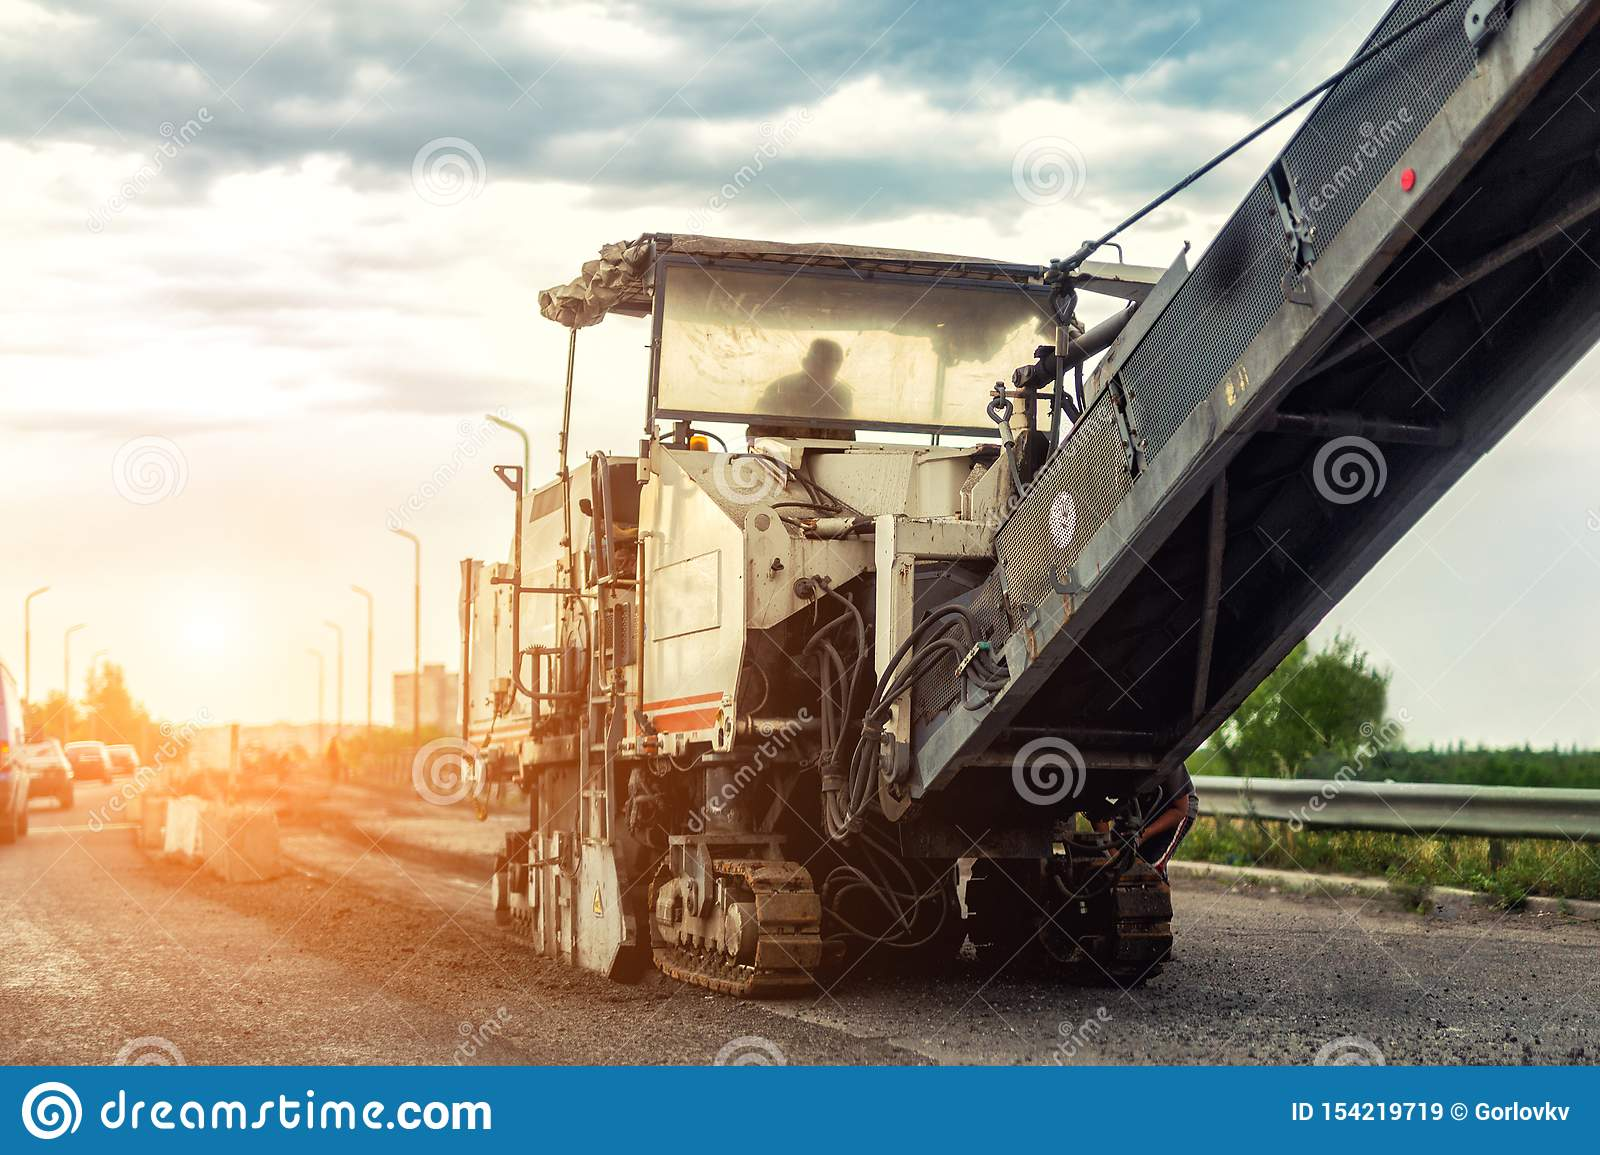 Asphalt milling and grinding machine at road repair and construction site. Highway renewal with heavy machinery